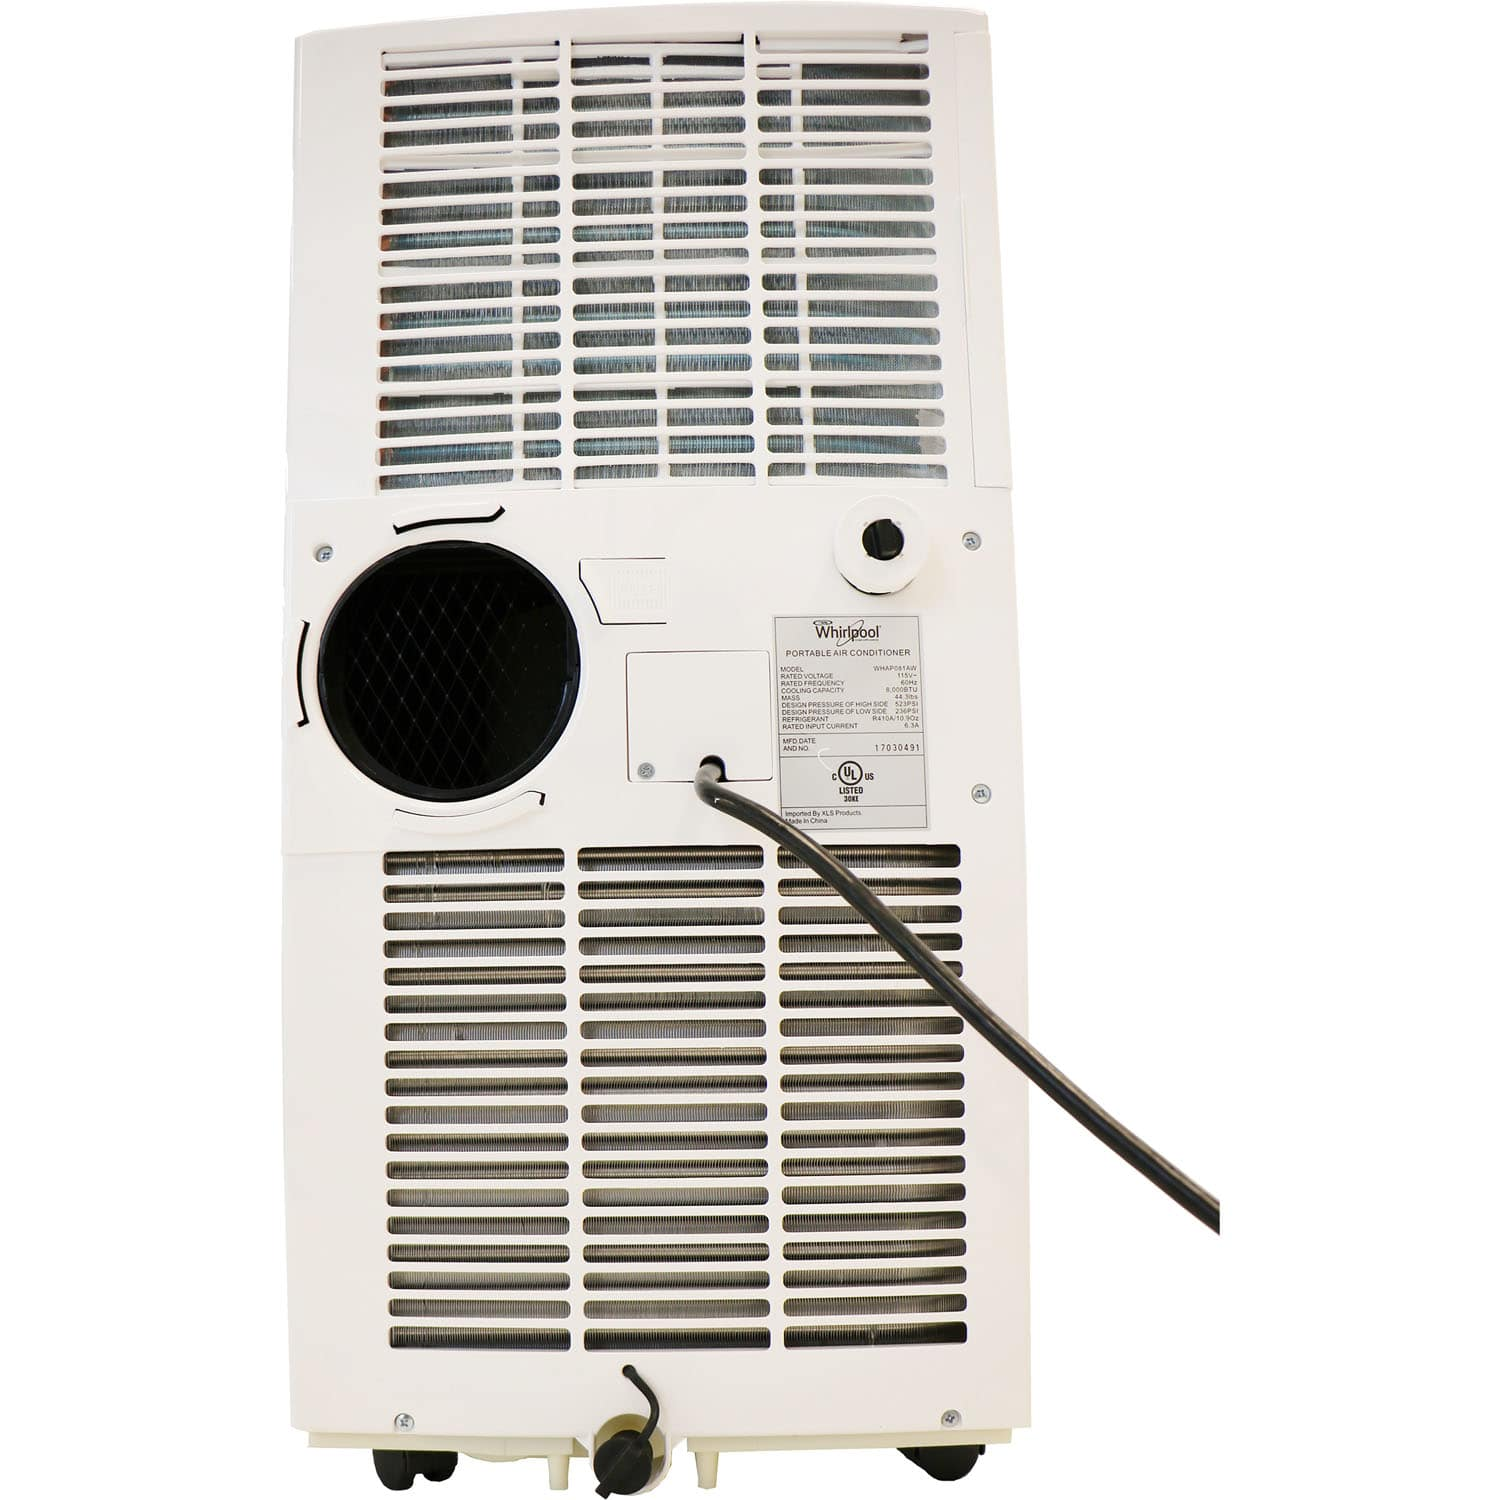 Whirlpool Portable Air Conditioners - WHAP081AW